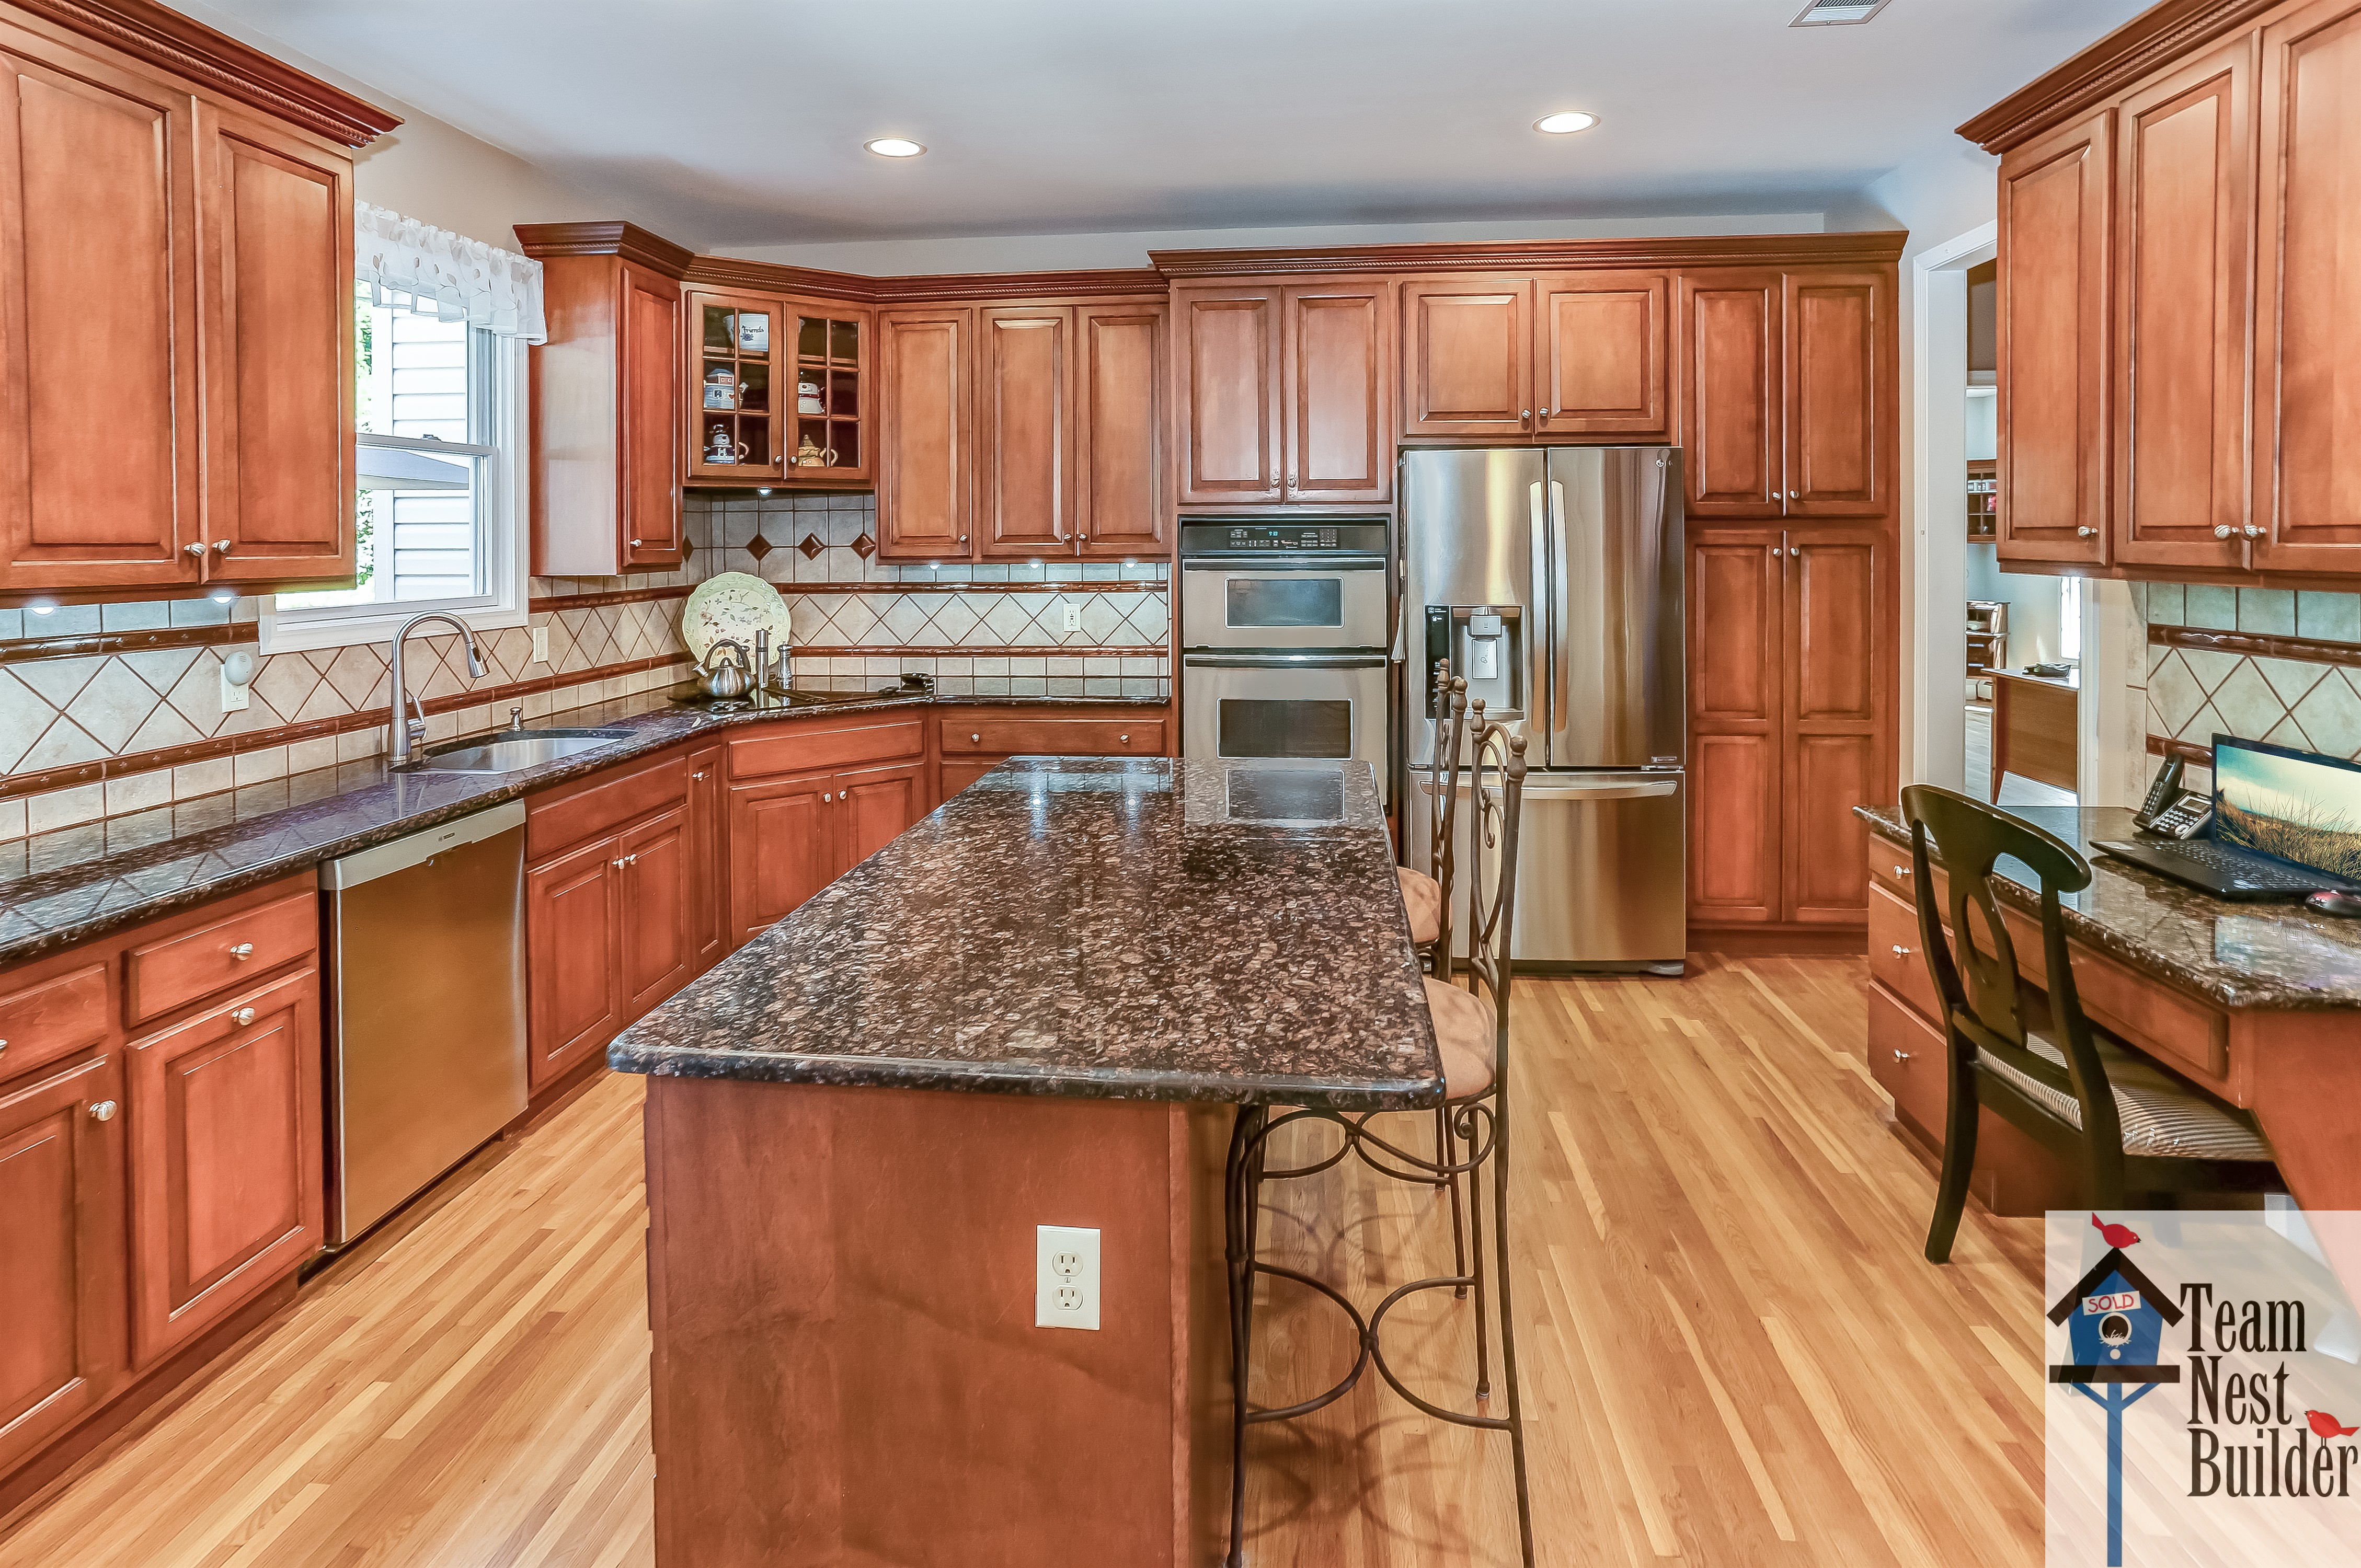 This granite and stainless steel-outfitted kitchen offers a world of cooking adventures!